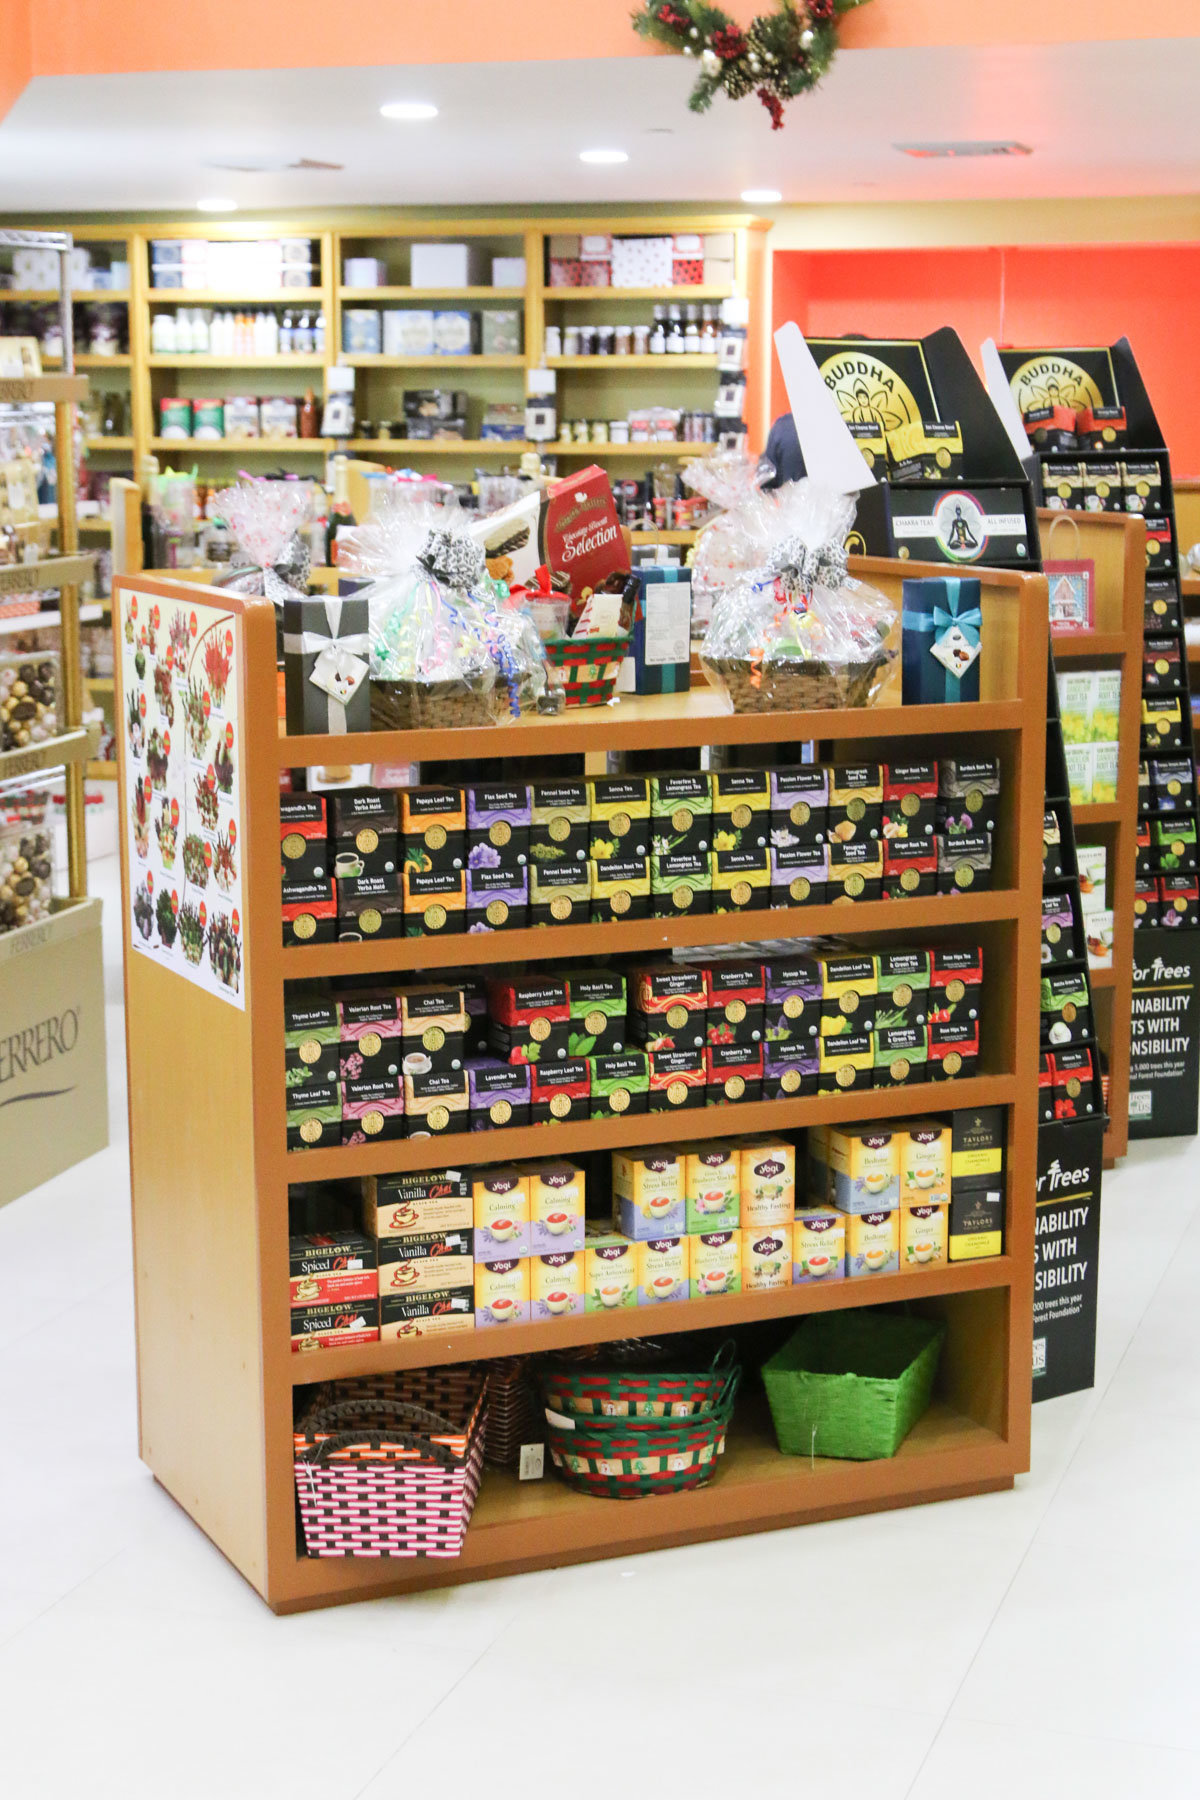 Promo shot of a store shelf with products. Photo by Ross Photography, Trinidad, W.I..